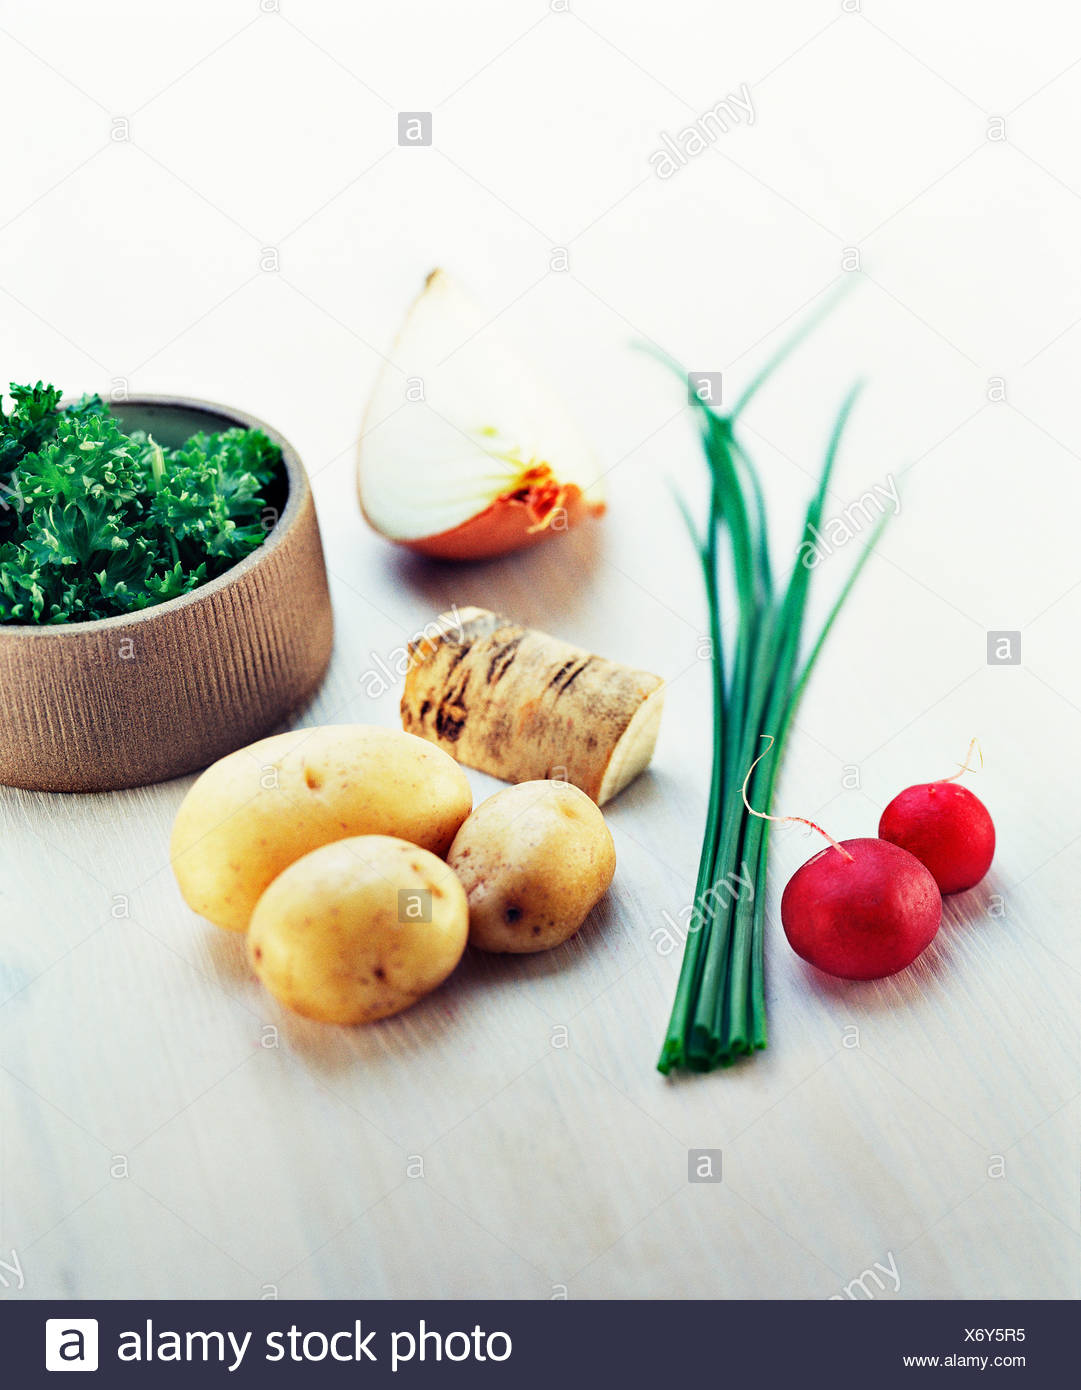 Swedish primary produce. - Stock Image